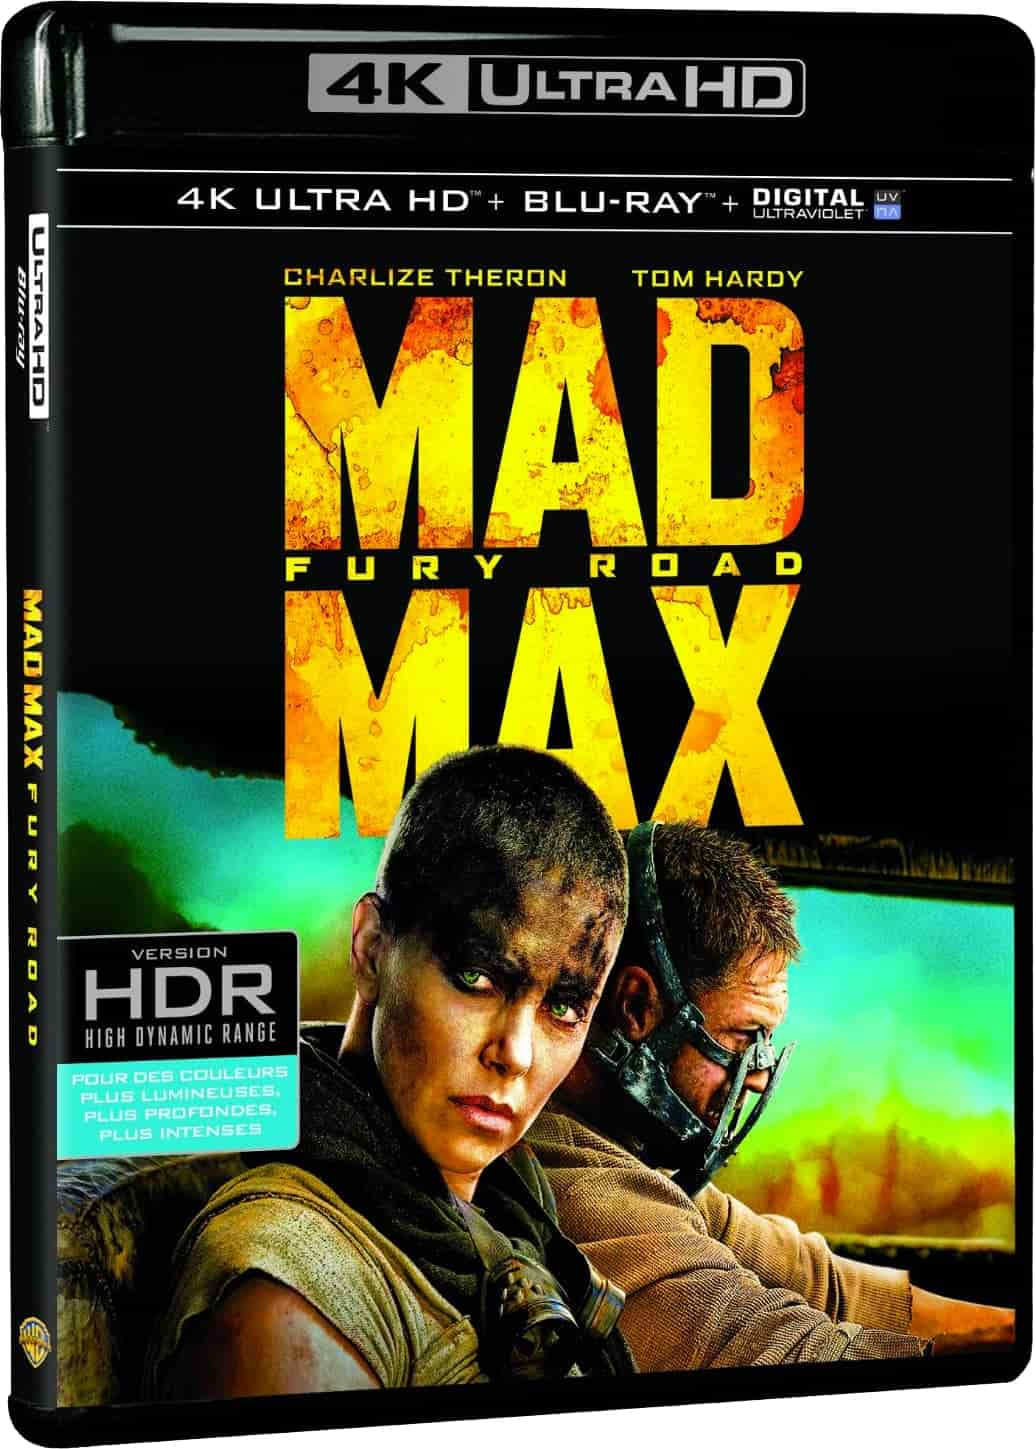 Mad Max: Fury Road 2015 2160p HDR UltraHD BluRay